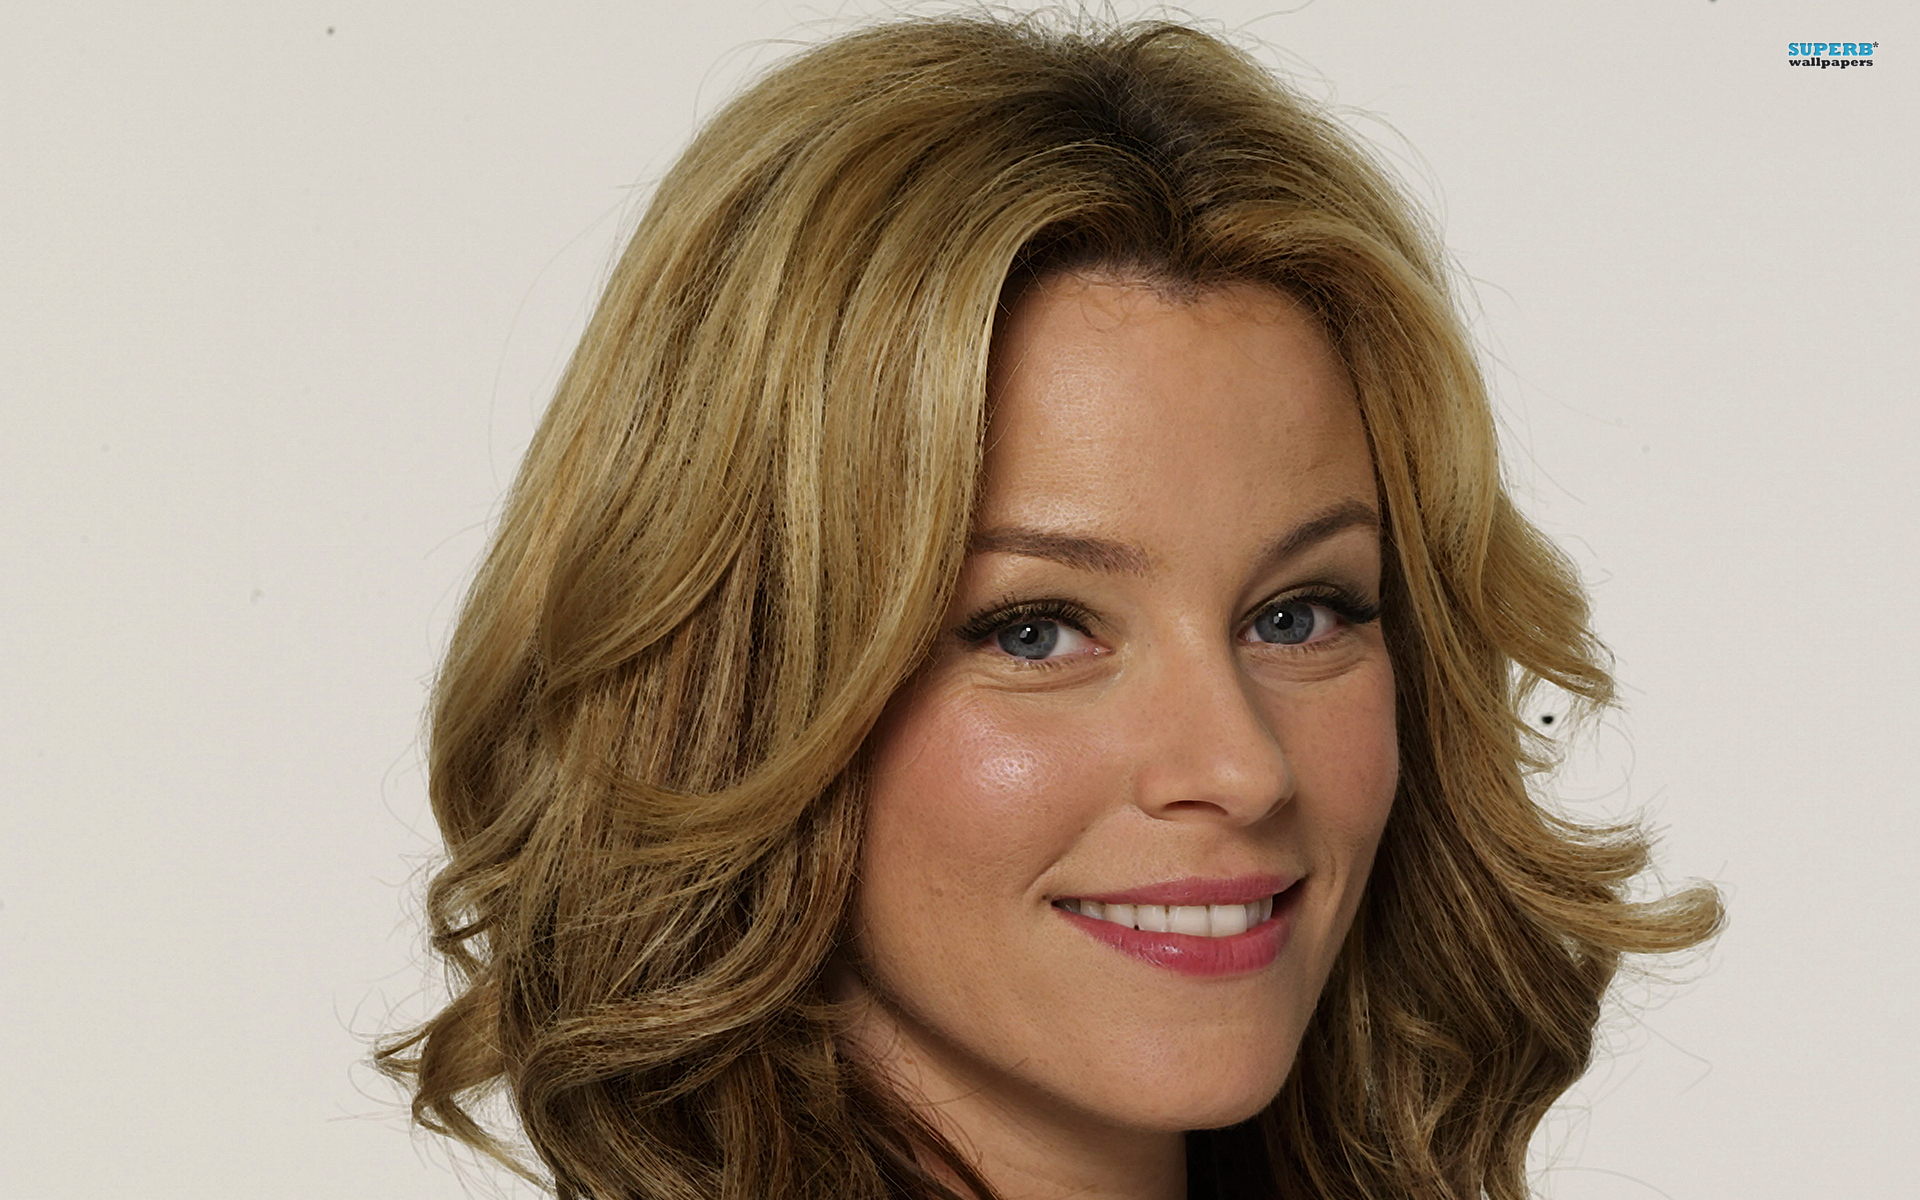 Elizabeth Banks Wallpapers High Quality Download Free